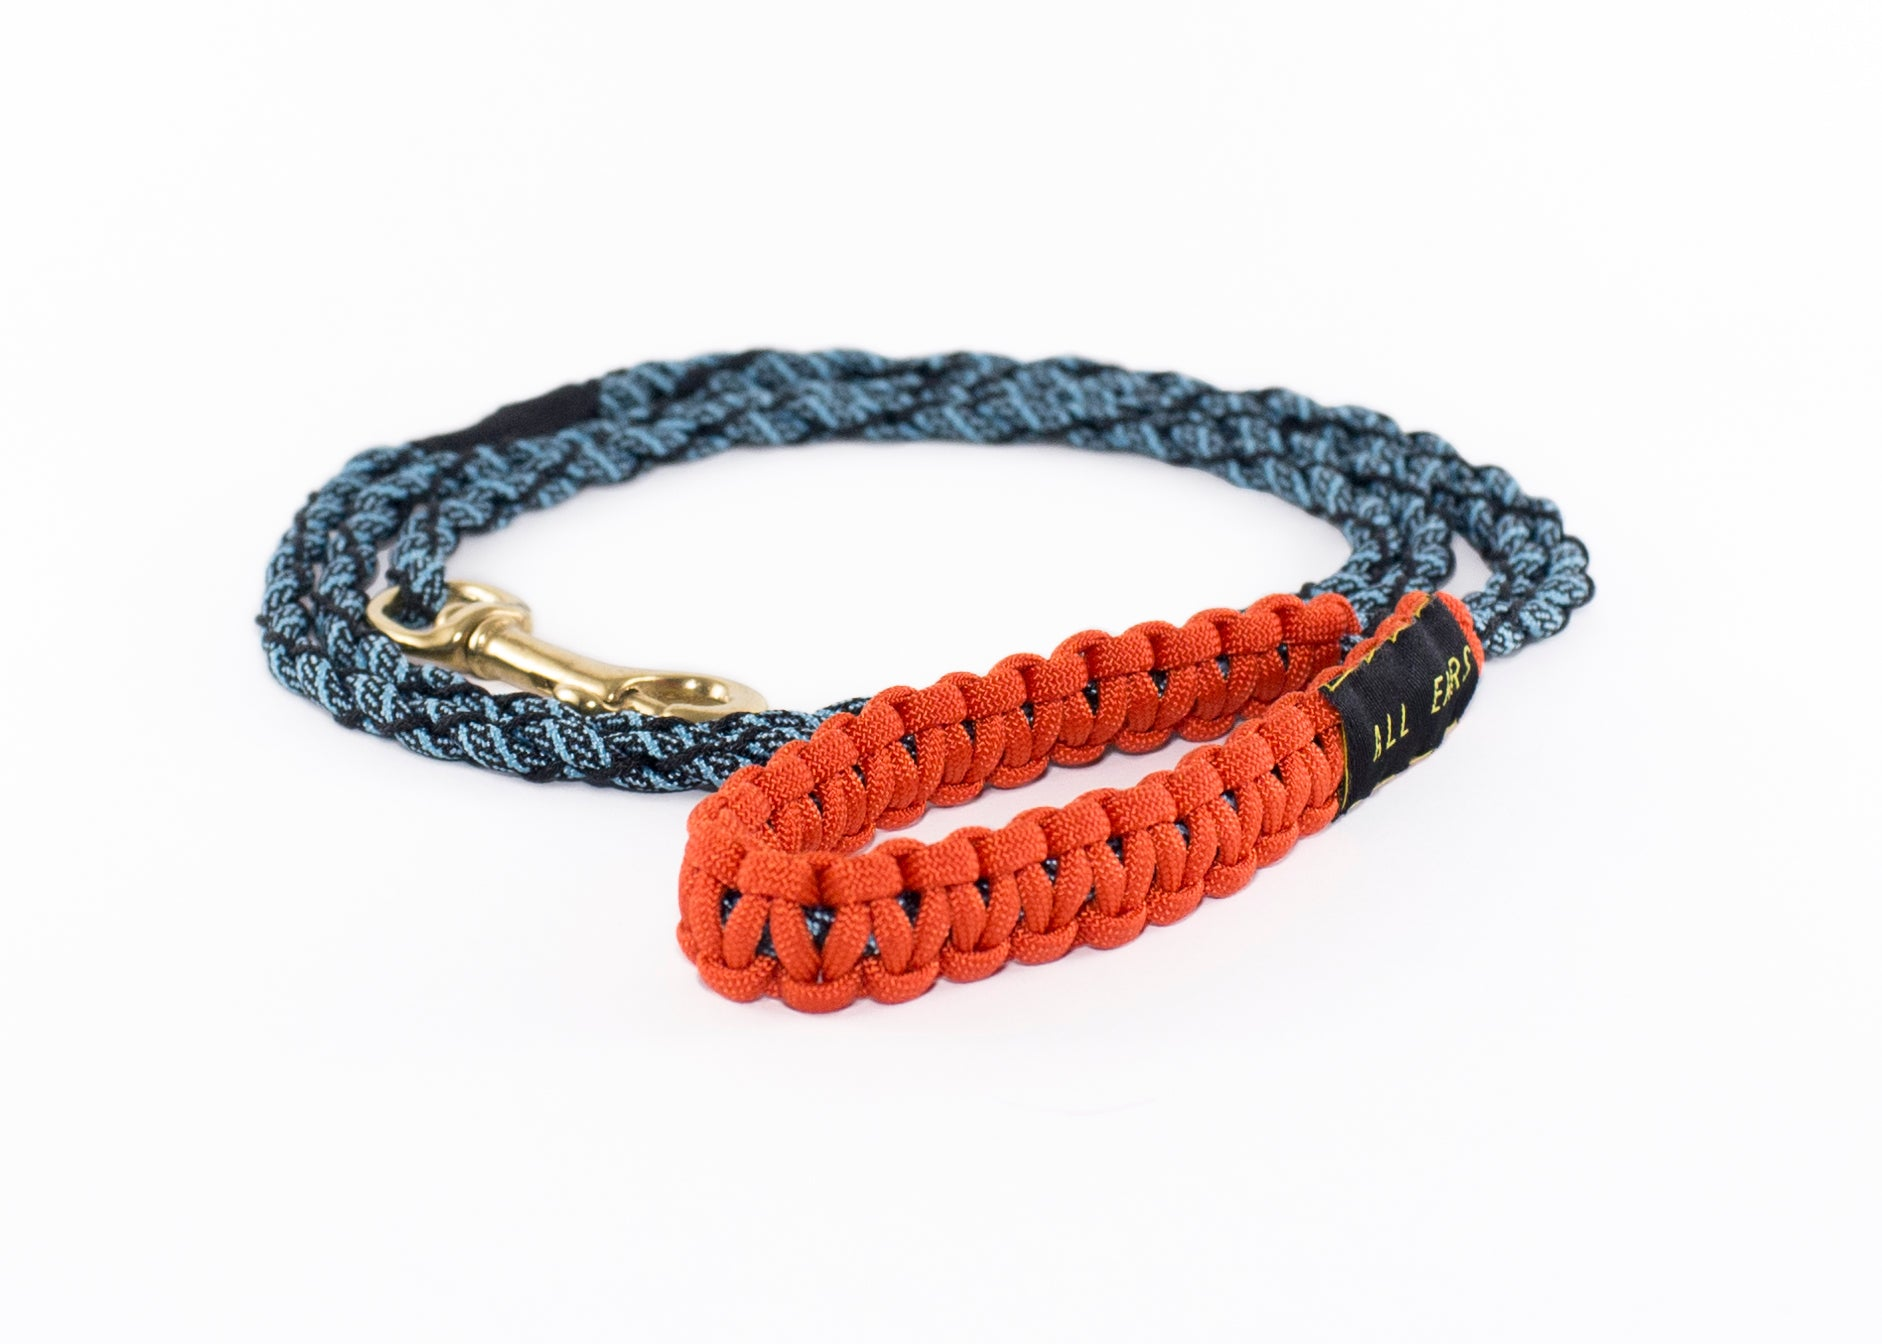 Cat Leash Braided Paracord 550 - Turquoise and Black